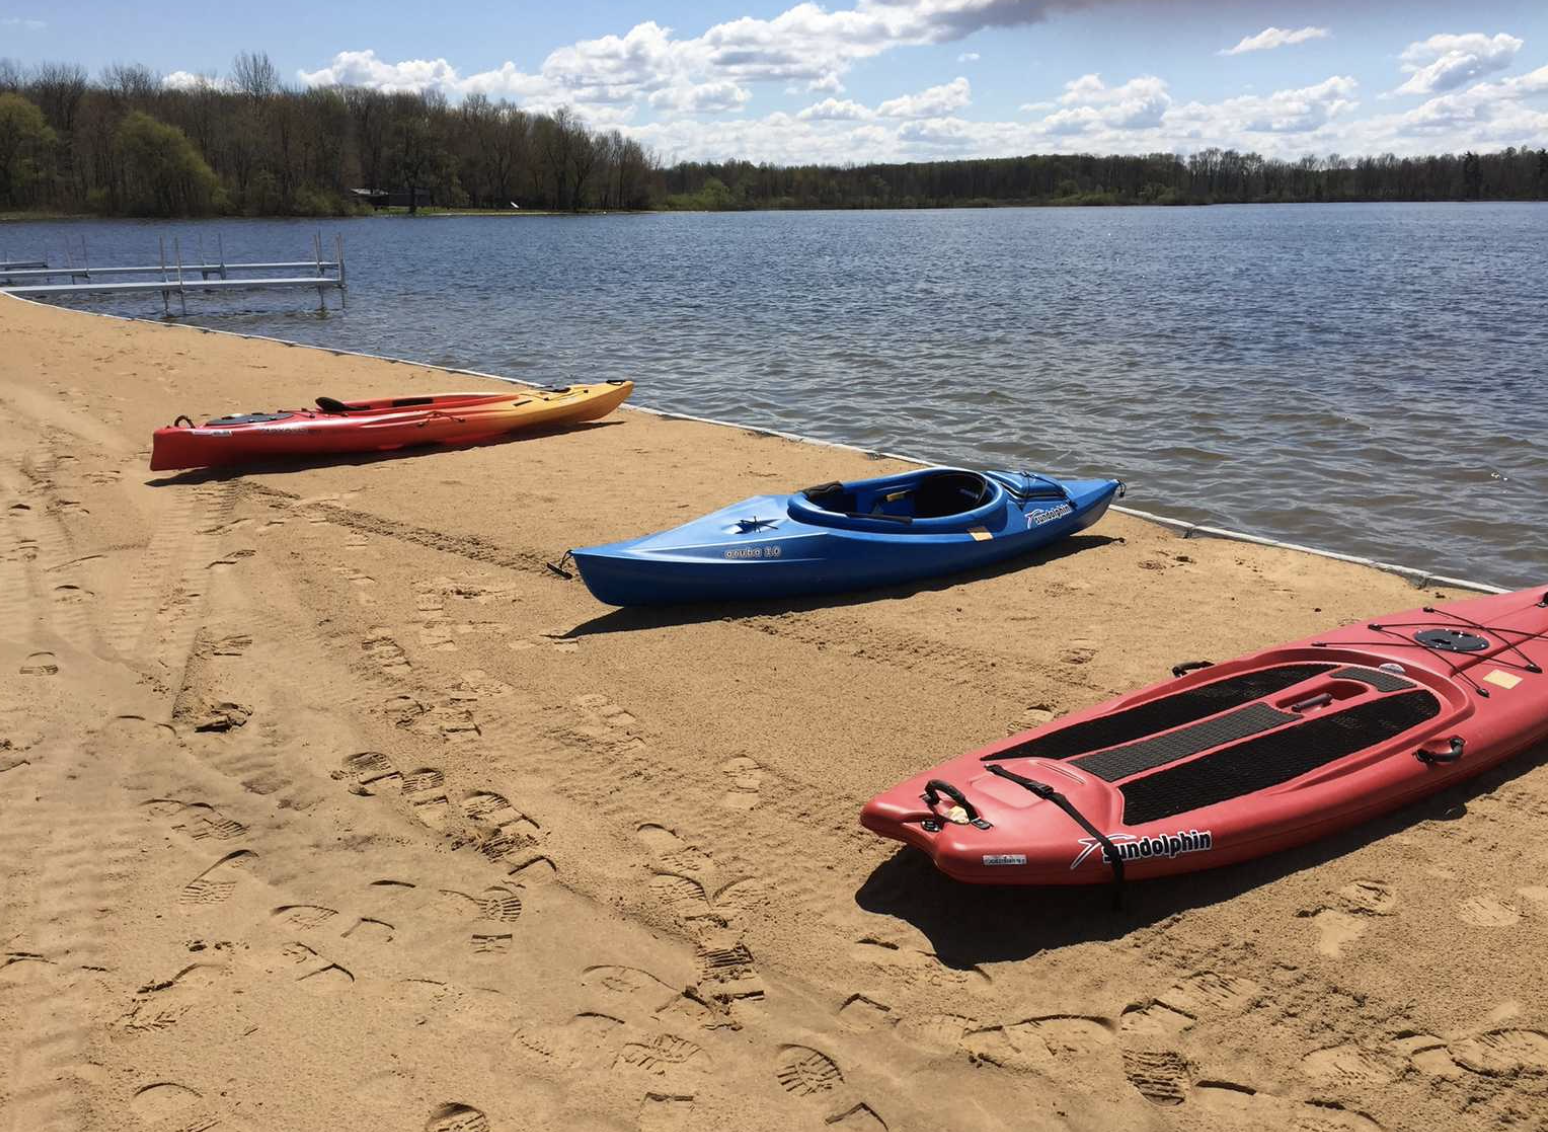 Kayaks and paddle board on the beach next to the water.